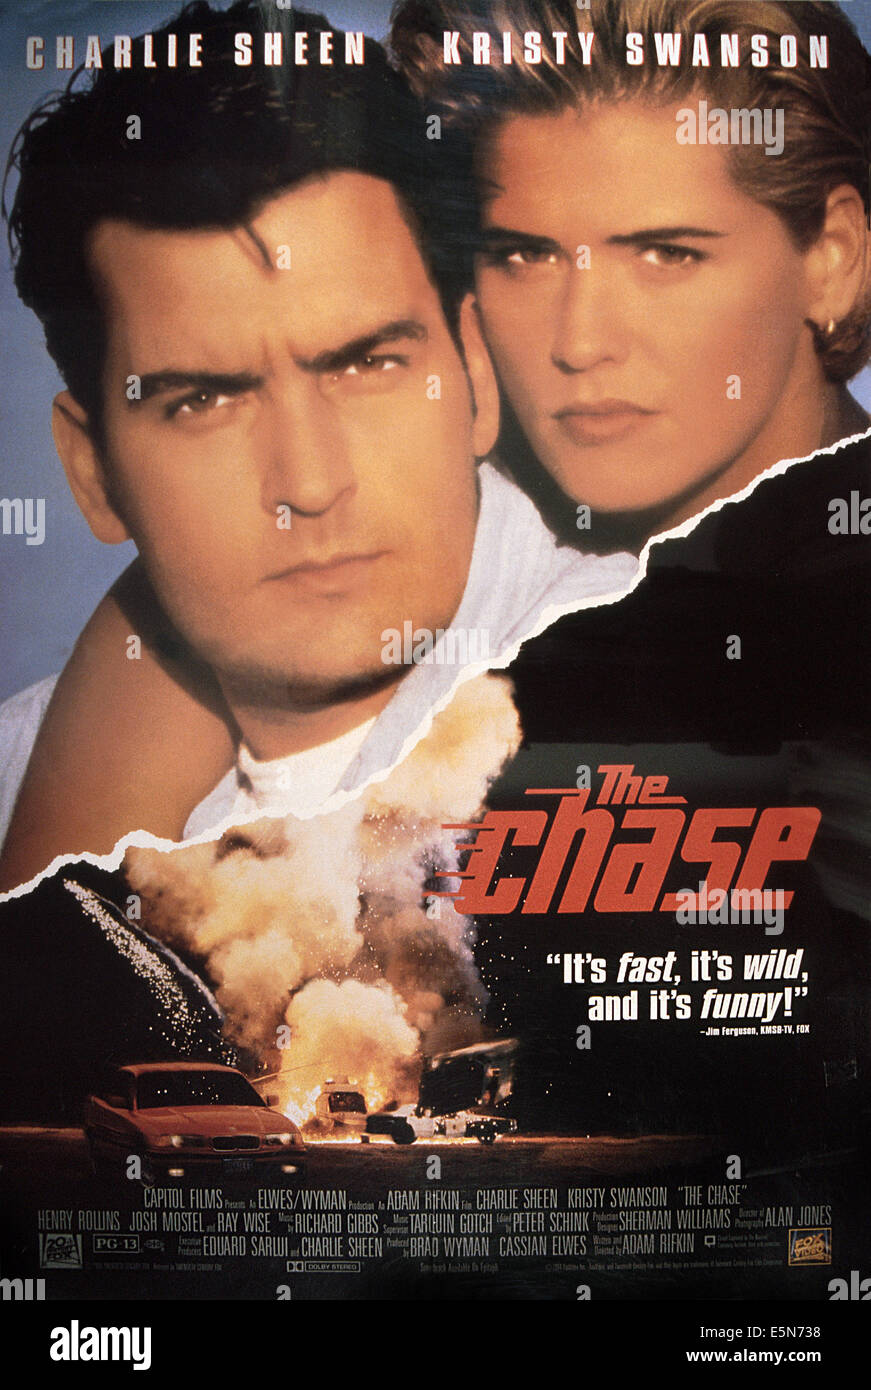 THE CHASE, U.S. poster, from left: Charlie Sheen, Kristy Swanson, 1994. ©20th Century Fox-Film Corporation, - Stock Image